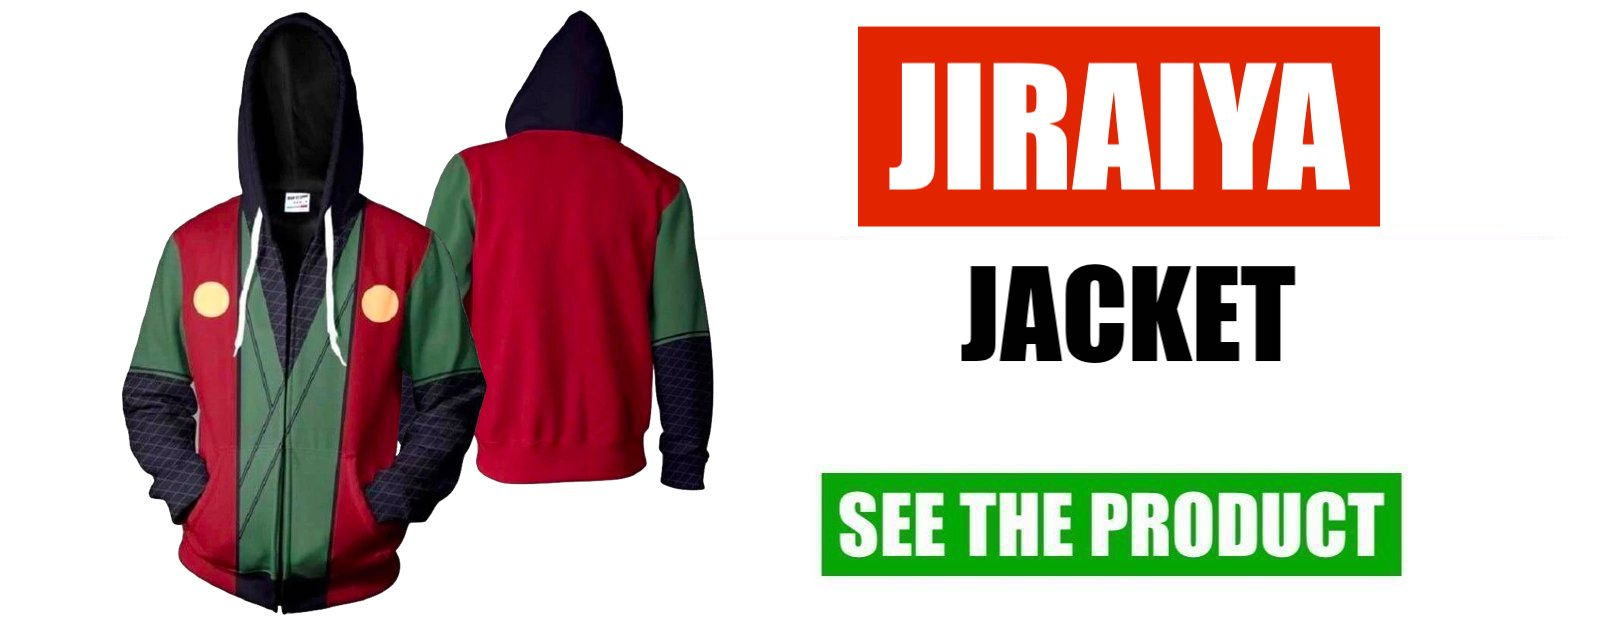 jiraiya jacket